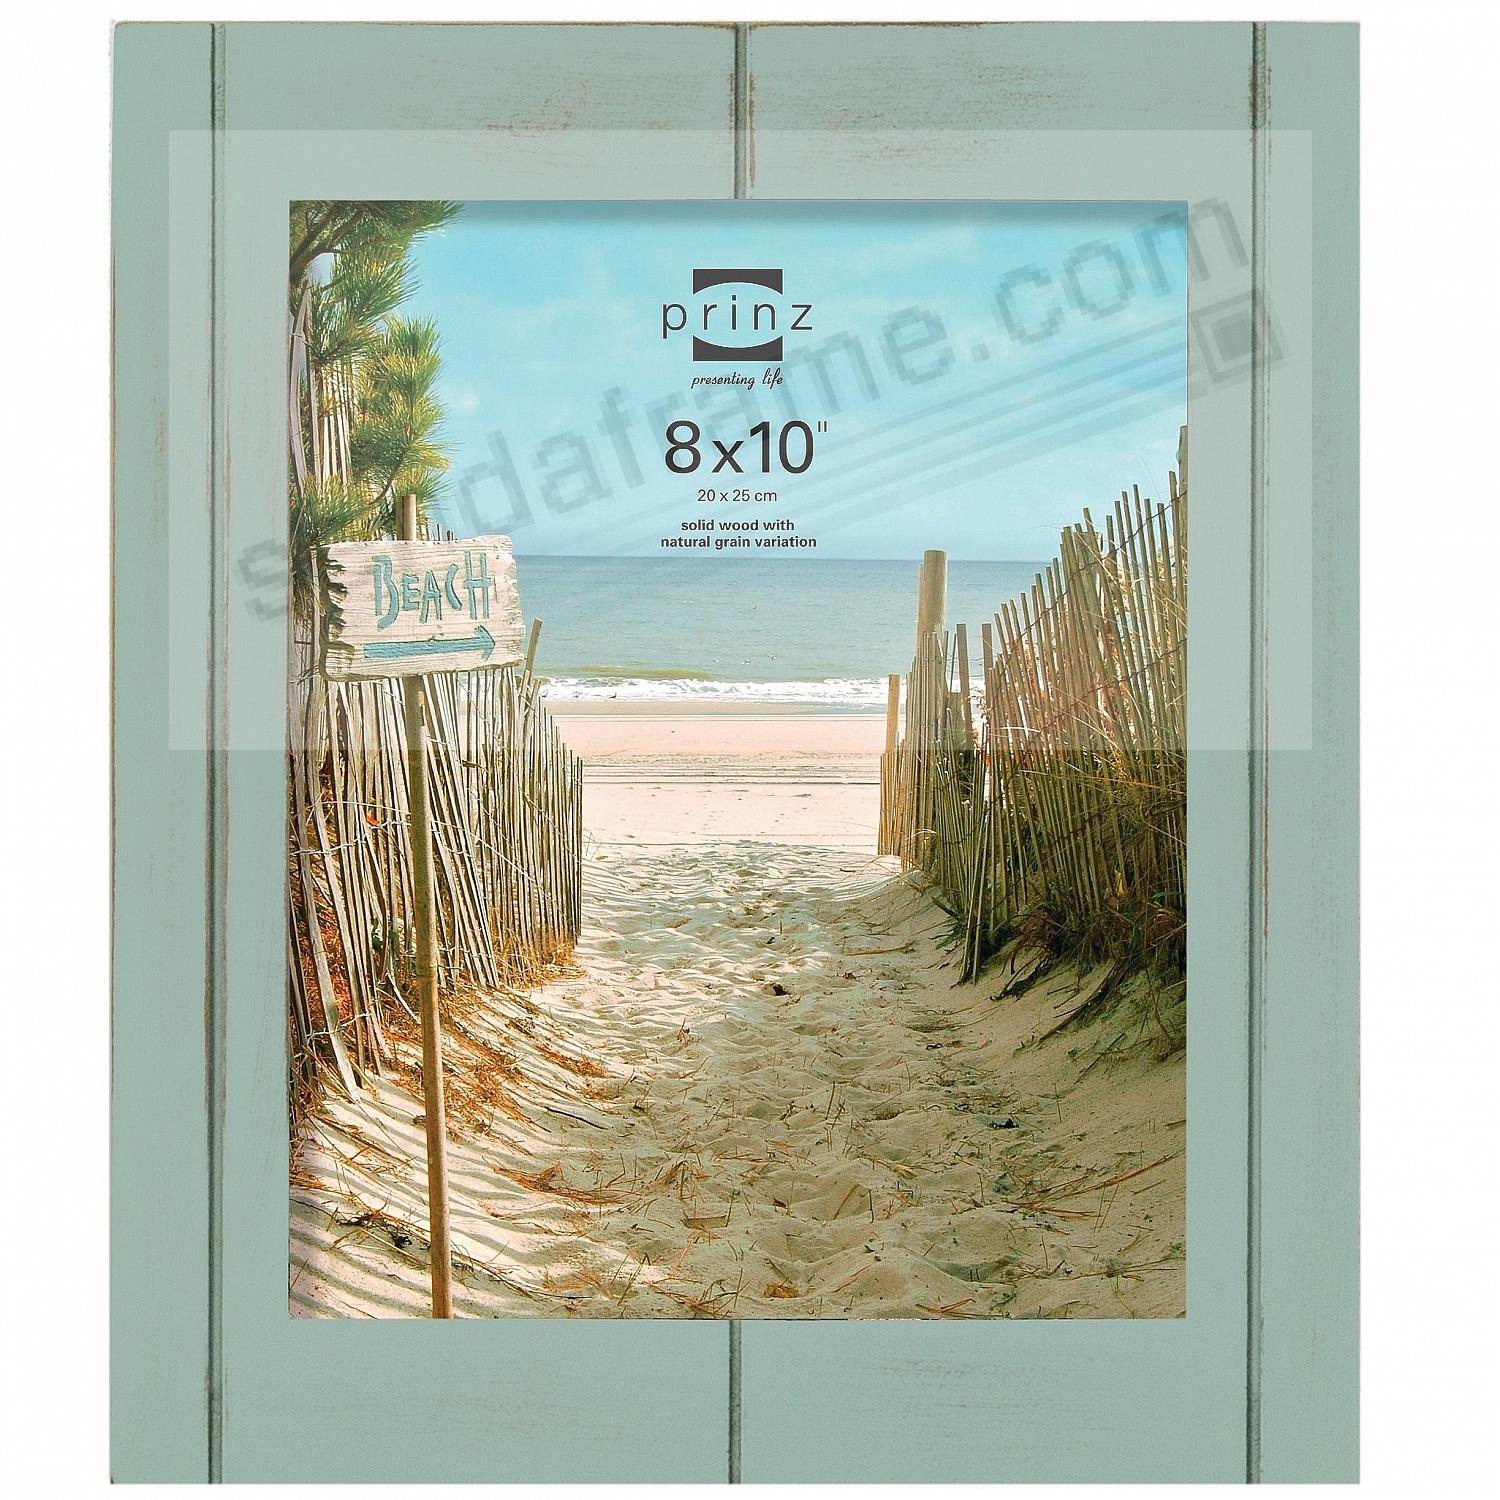 SEASIDE Aquamarine stained wood 8x10 frame by Prinz - Picture Frames ...